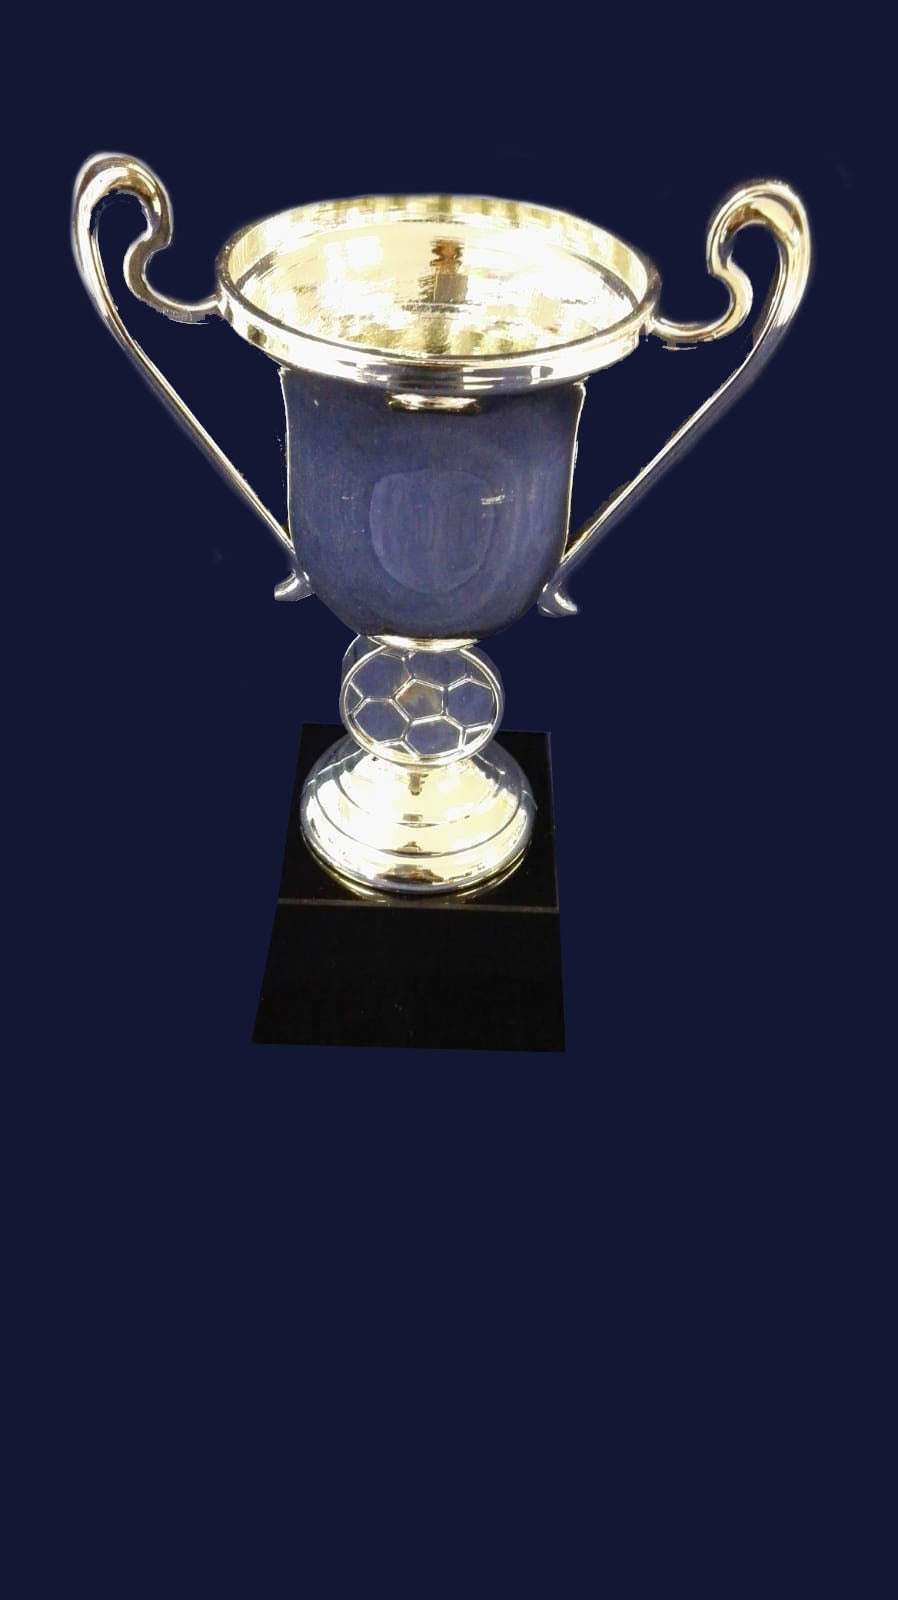 F94 CUP SILVER